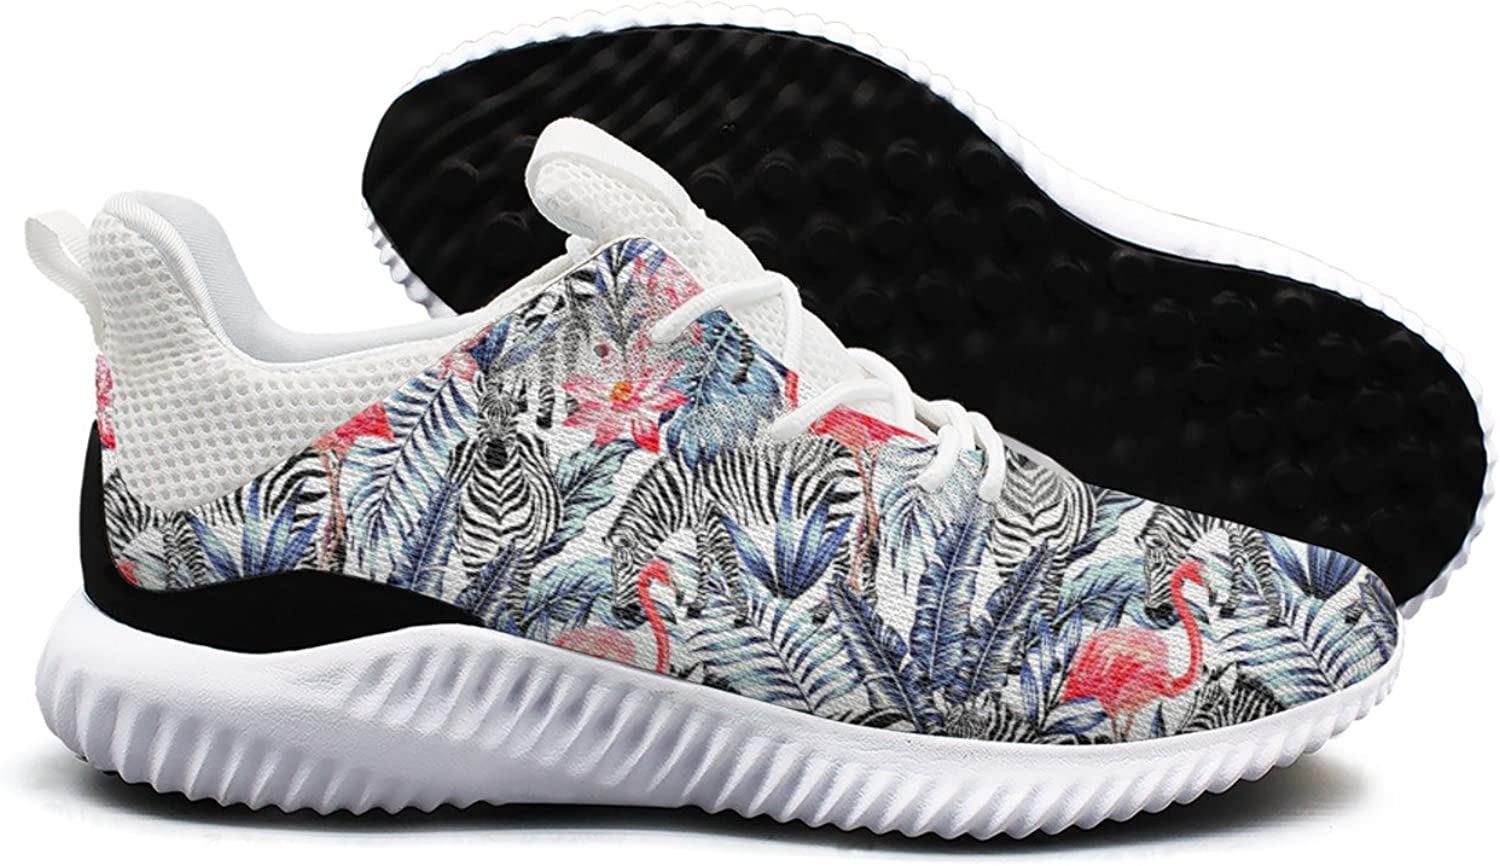 Tropical Flower and Pink Flamingo Leisure Fashion Running shoes Woman's New Jogger Active